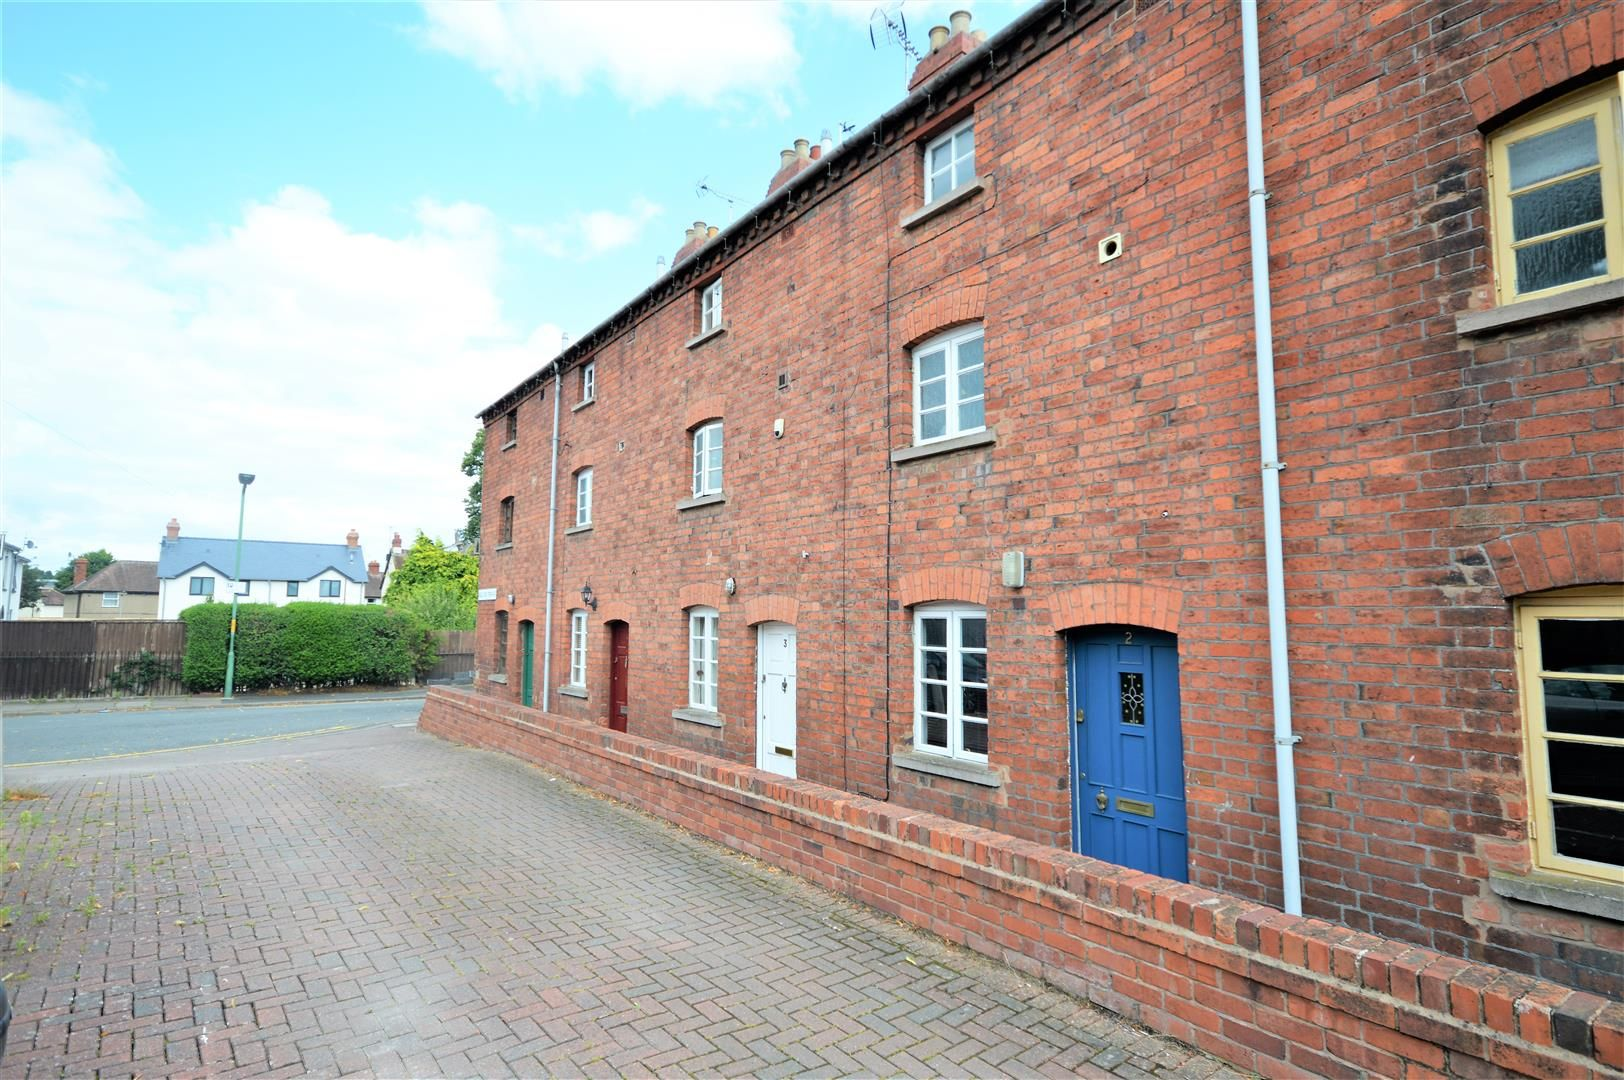 3 bed town-house for sale in Hereford 13